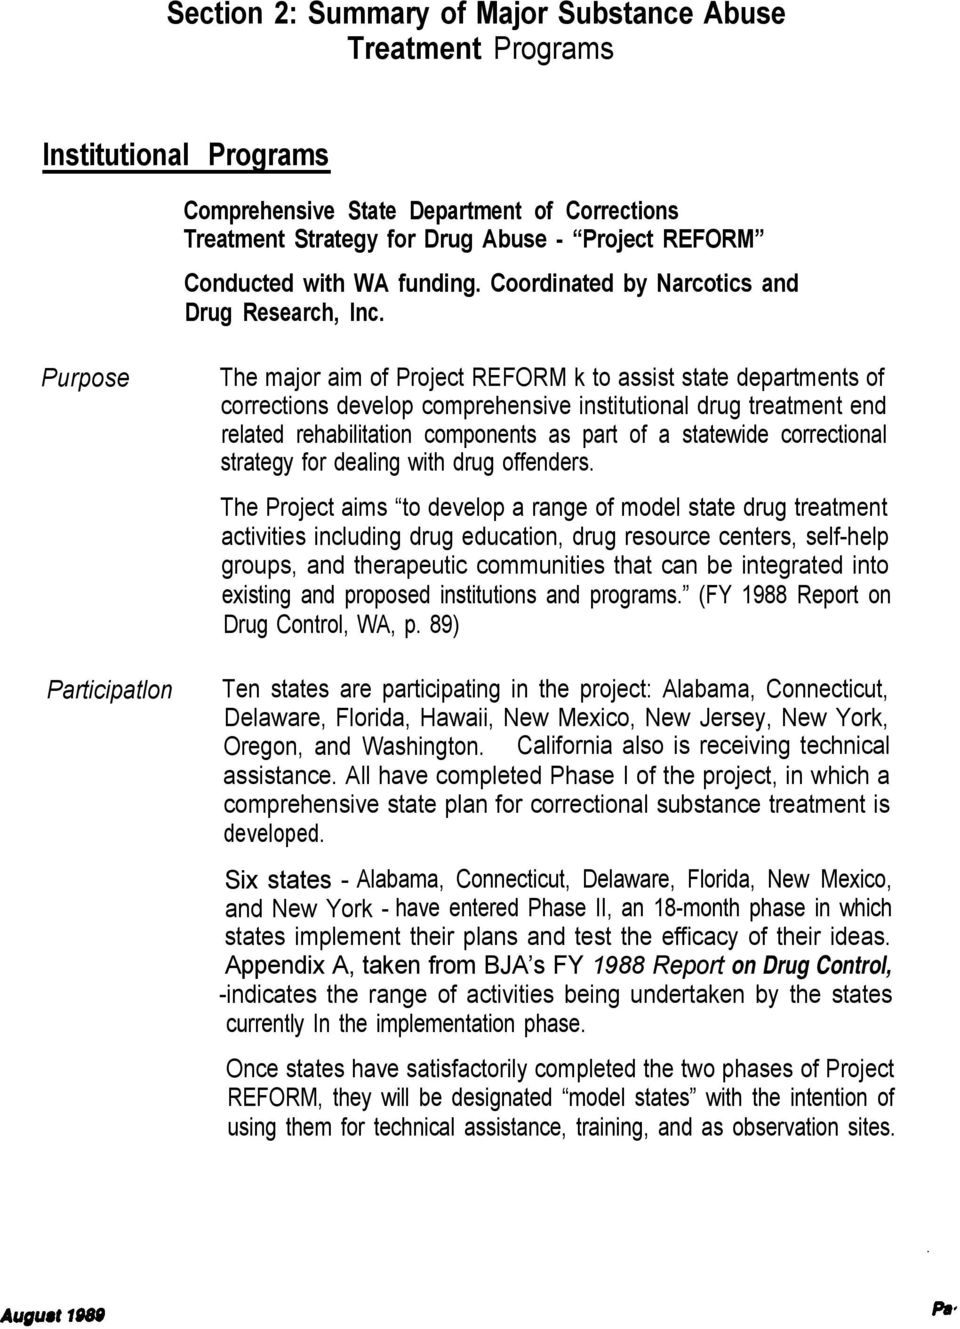 Purpose Participatlon The major aim of Project REFORM k to assist state departments of corrections develop comprehensive institutional drug treatment end related rehabilitation components as part of